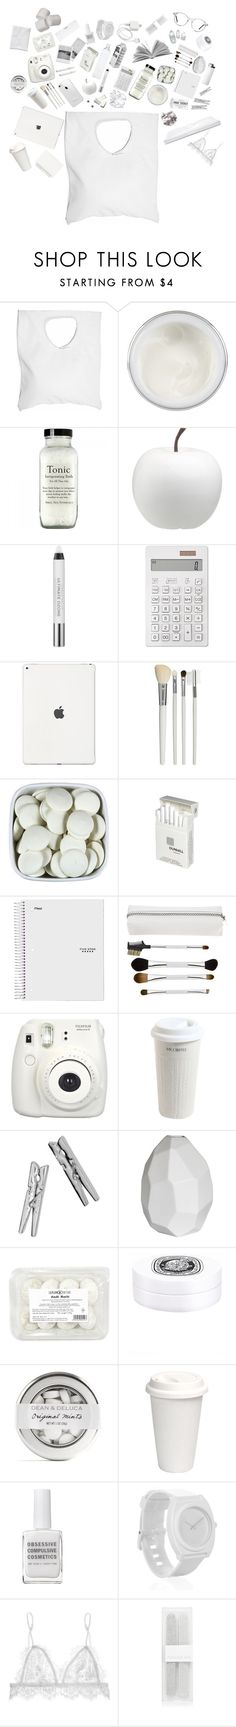 """""""What's in my bag?"""" by xchxara ❤ liked on Polyvore featuring Jennifer Haley, Chantecaille, CB2, Urban Decay, Muji, Cath Kidston, Dunhill, Sonia Kashuk, Mr. Coffee and Monki"""